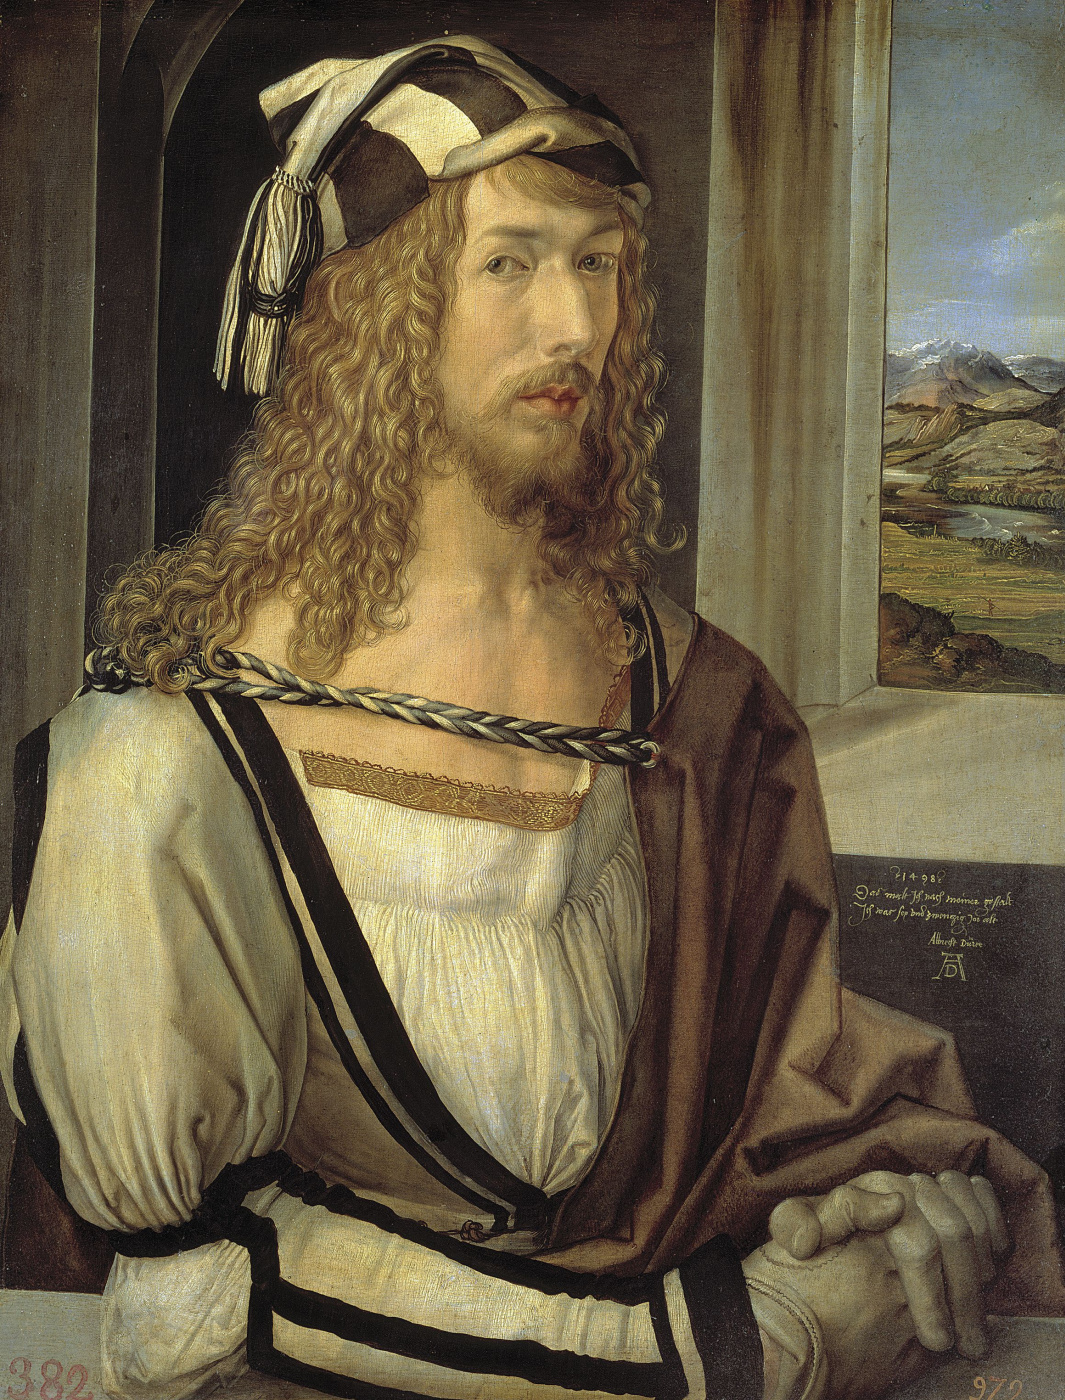 Albrecht Dürer. Self-portrait